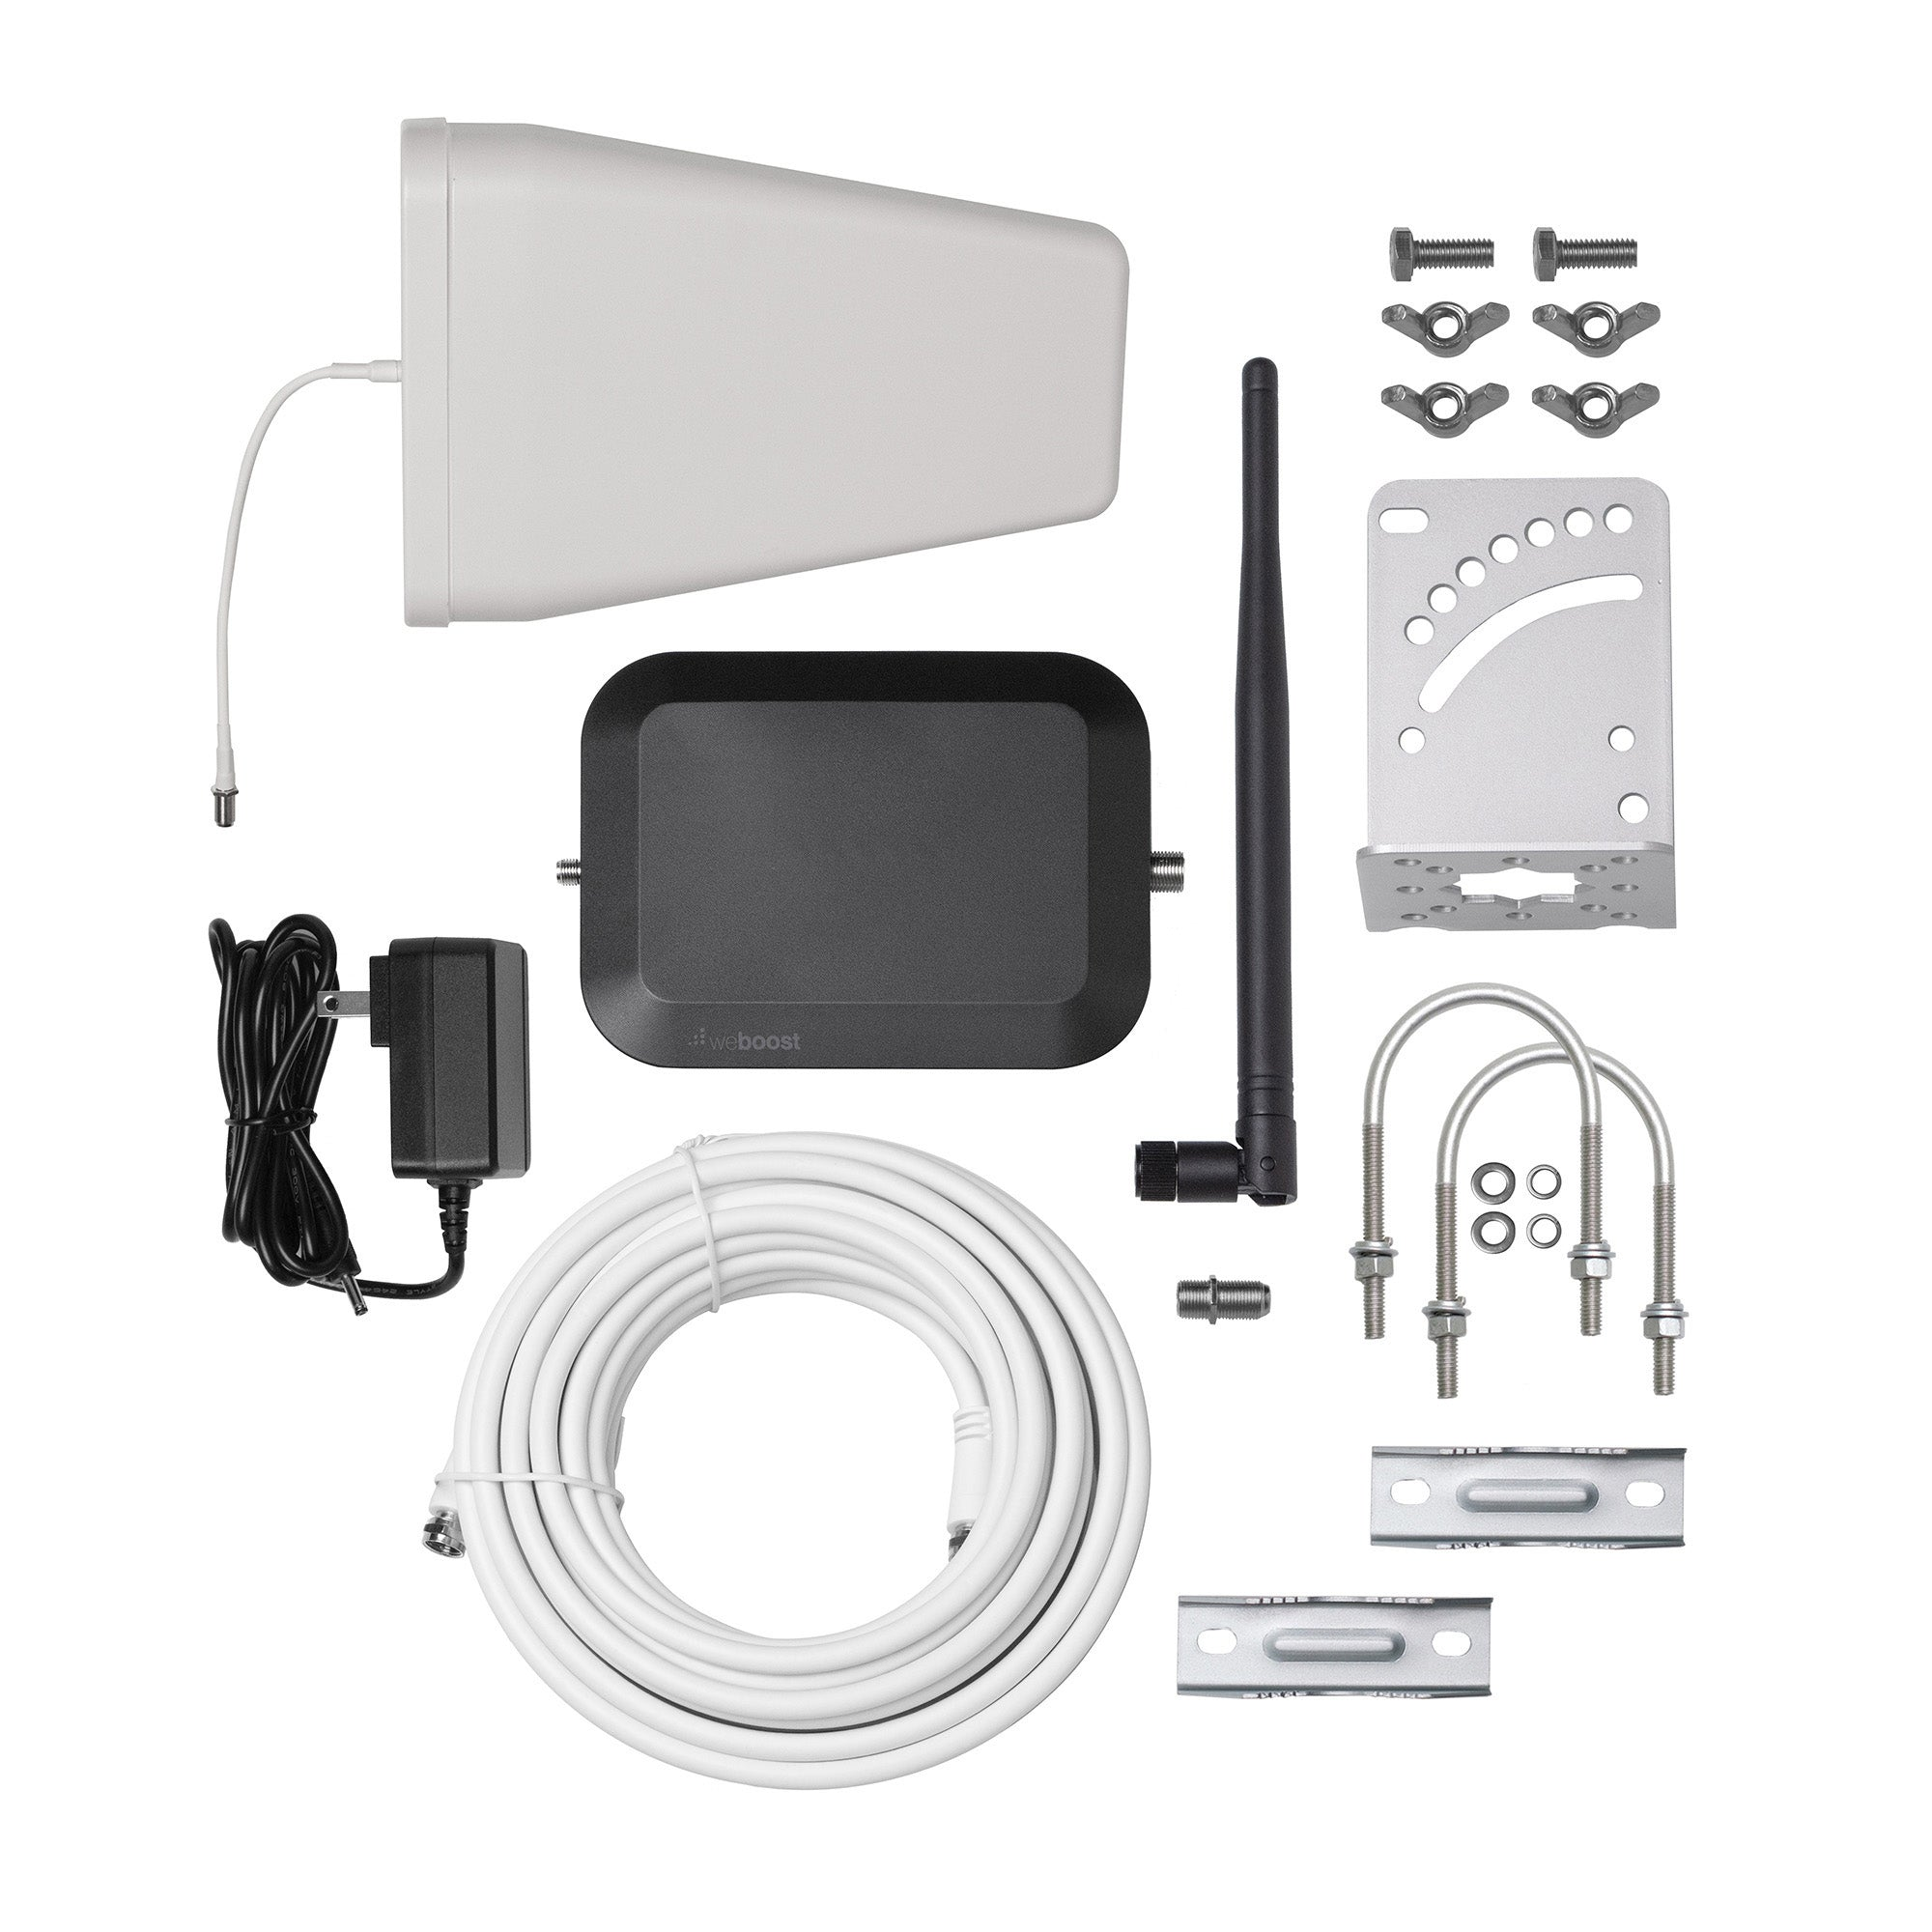 WeBoost Home Studio In-Building Signal Booster Kit